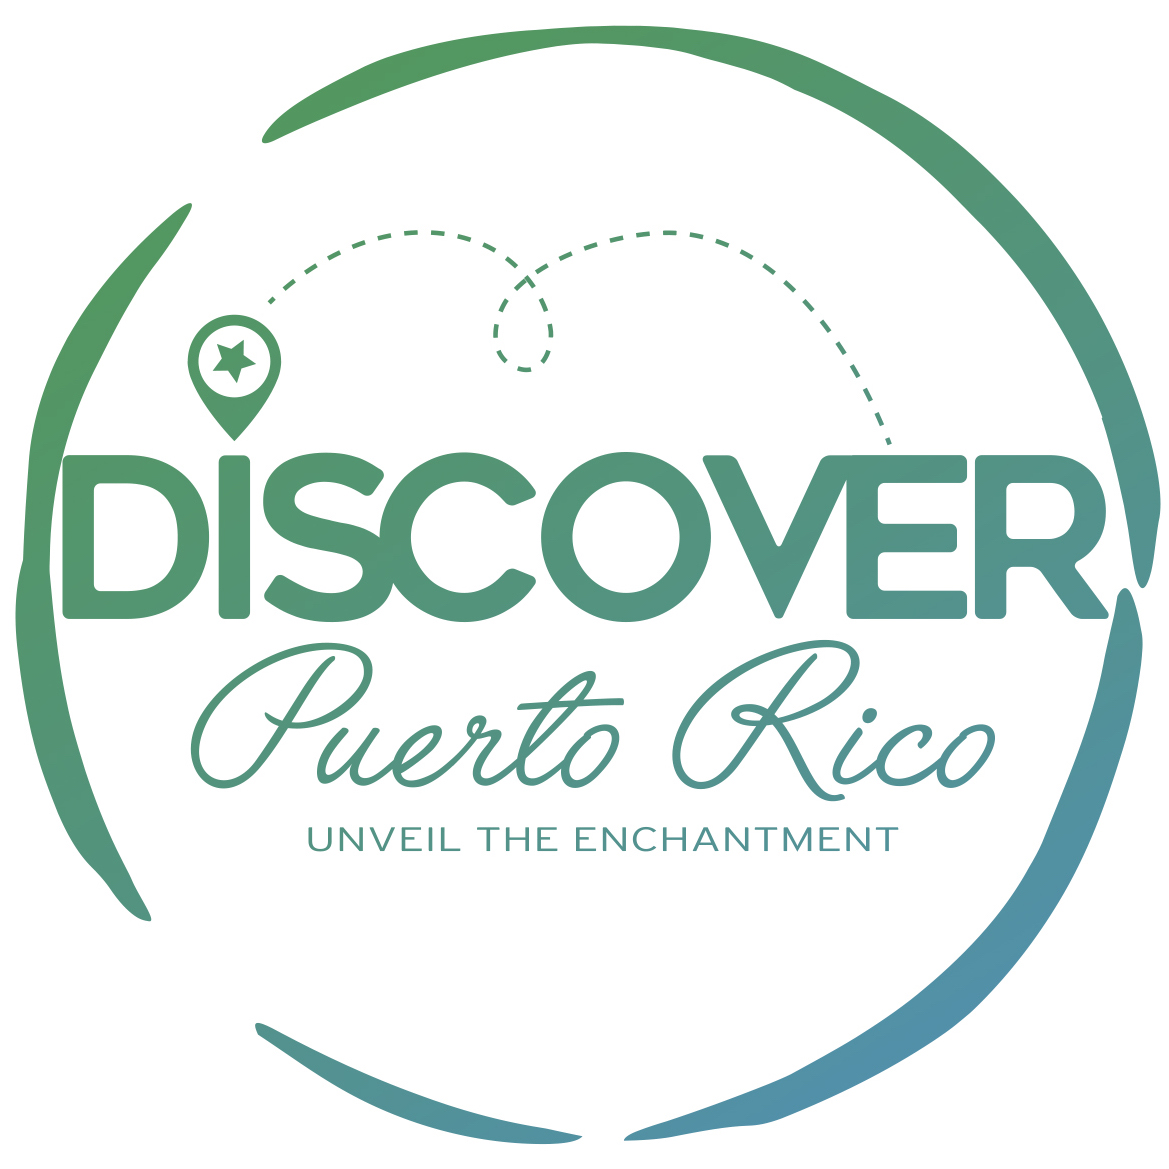 Discover Puerto Rico Tours